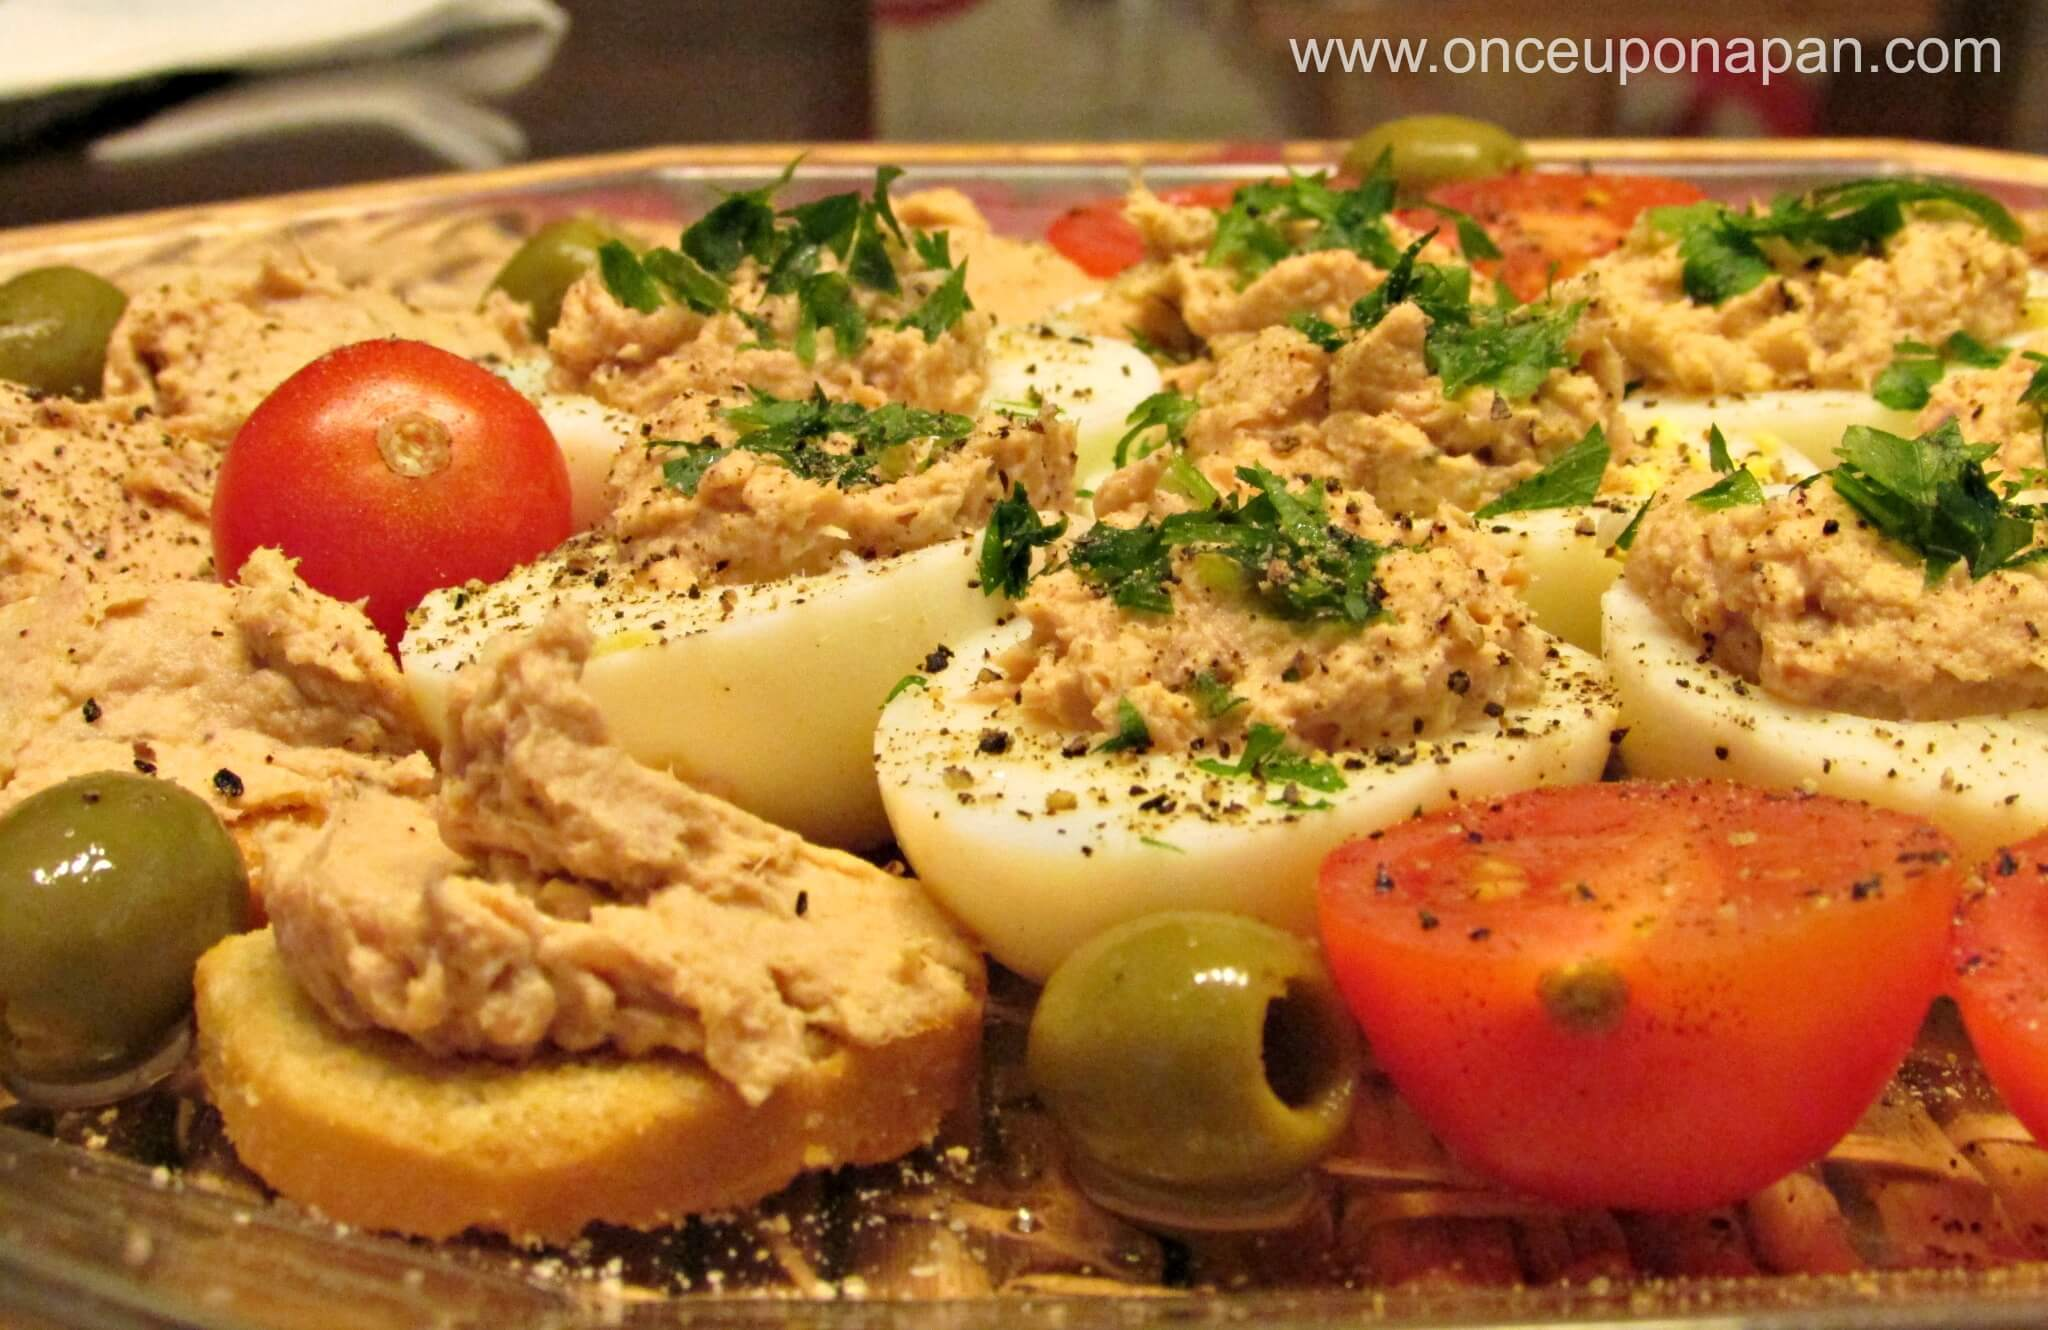 Eggs stuffed with Tuna